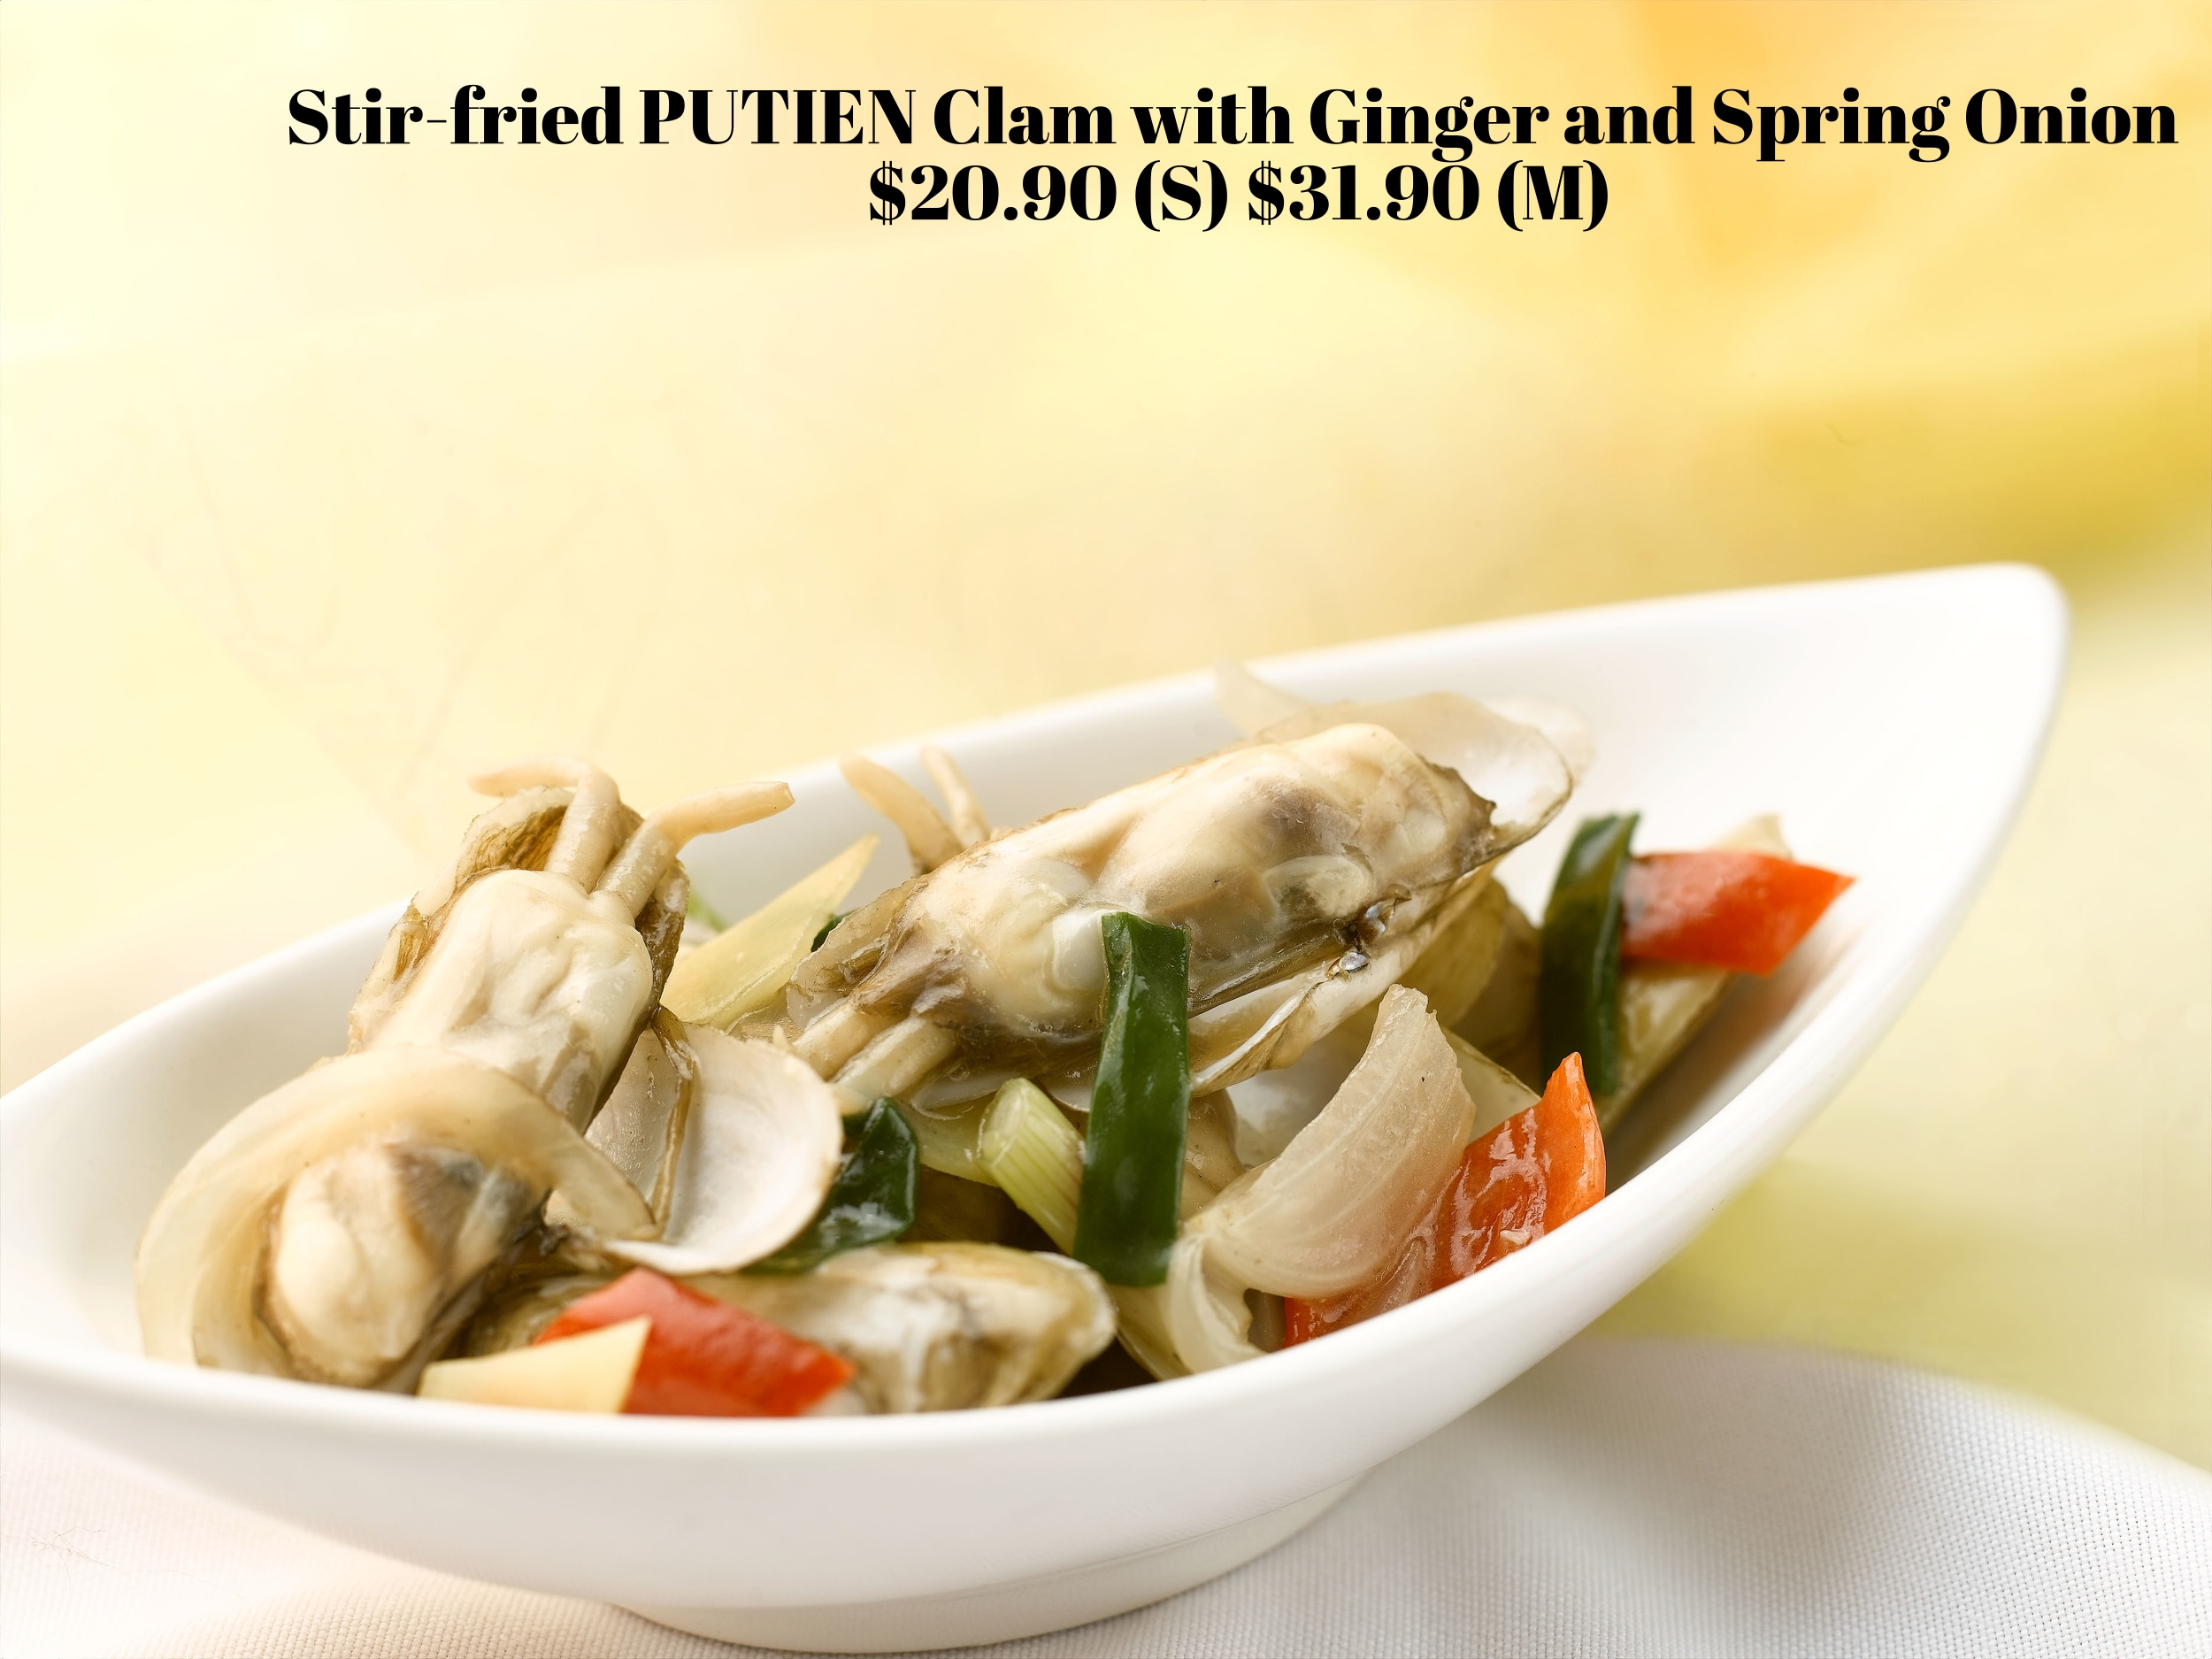 A wholesome dish that is cooked the traditional way to bring out the natural sweetness of the clams.